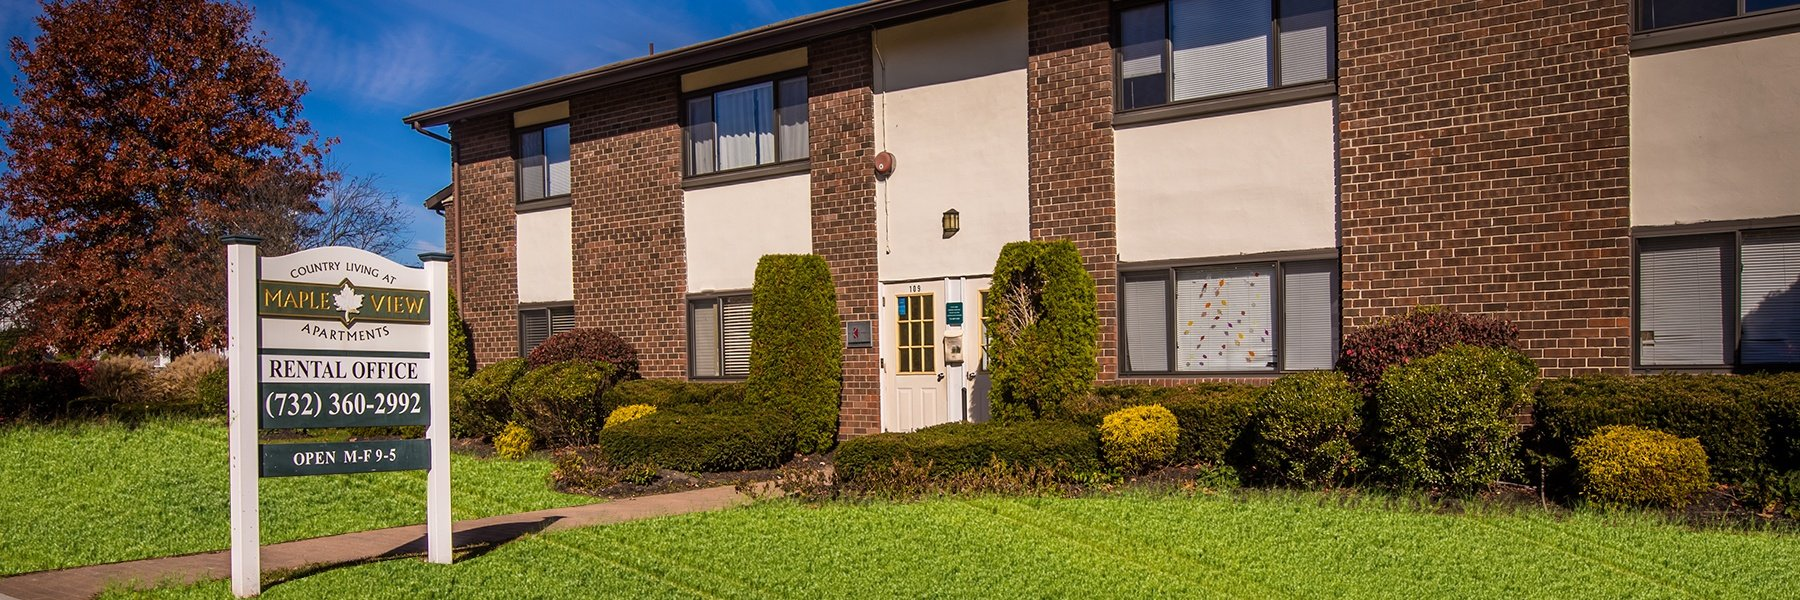 Country Living at Mapleview Apartments For Rent in Old Bridge, NJ Rental Office